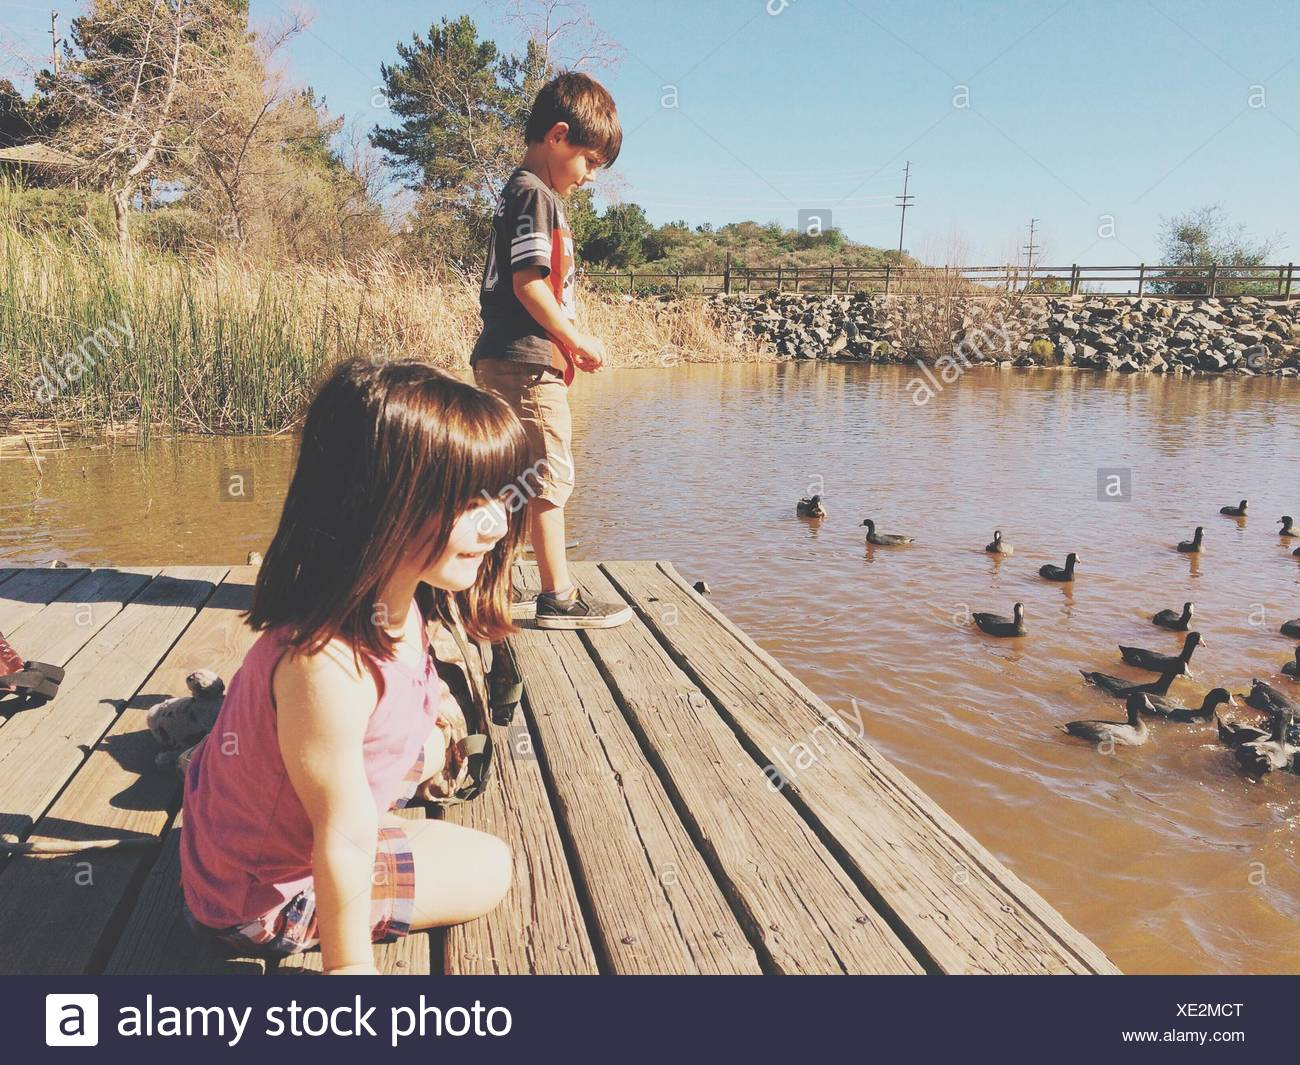 Sibling On Jetty With Coots In Pond - Stock Image